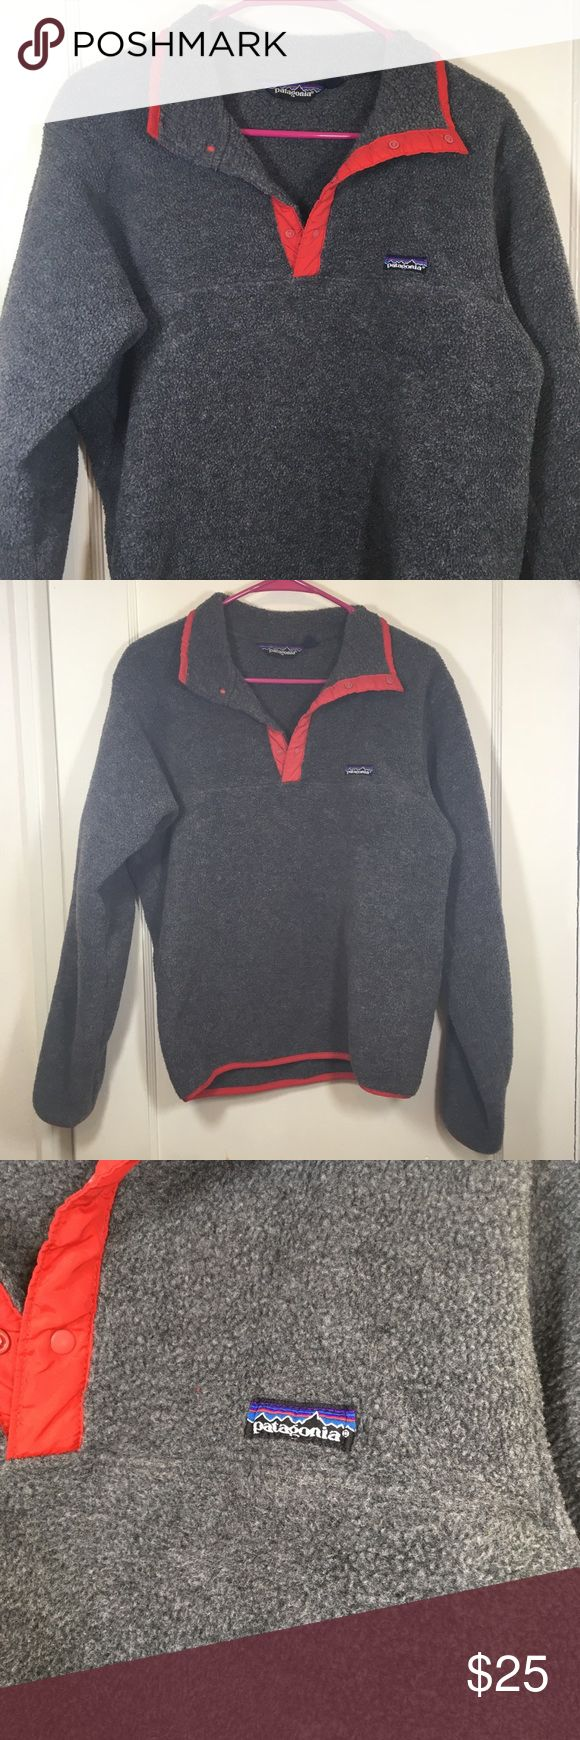 Patagonia fleece pullover jacket size medium Patagonia fleece pullover jacket size medium. Please see measurements. Arm pit to pit measures approximately 20 inches. Total length measures approximately 24 inches Patagonia Jackets & Coats